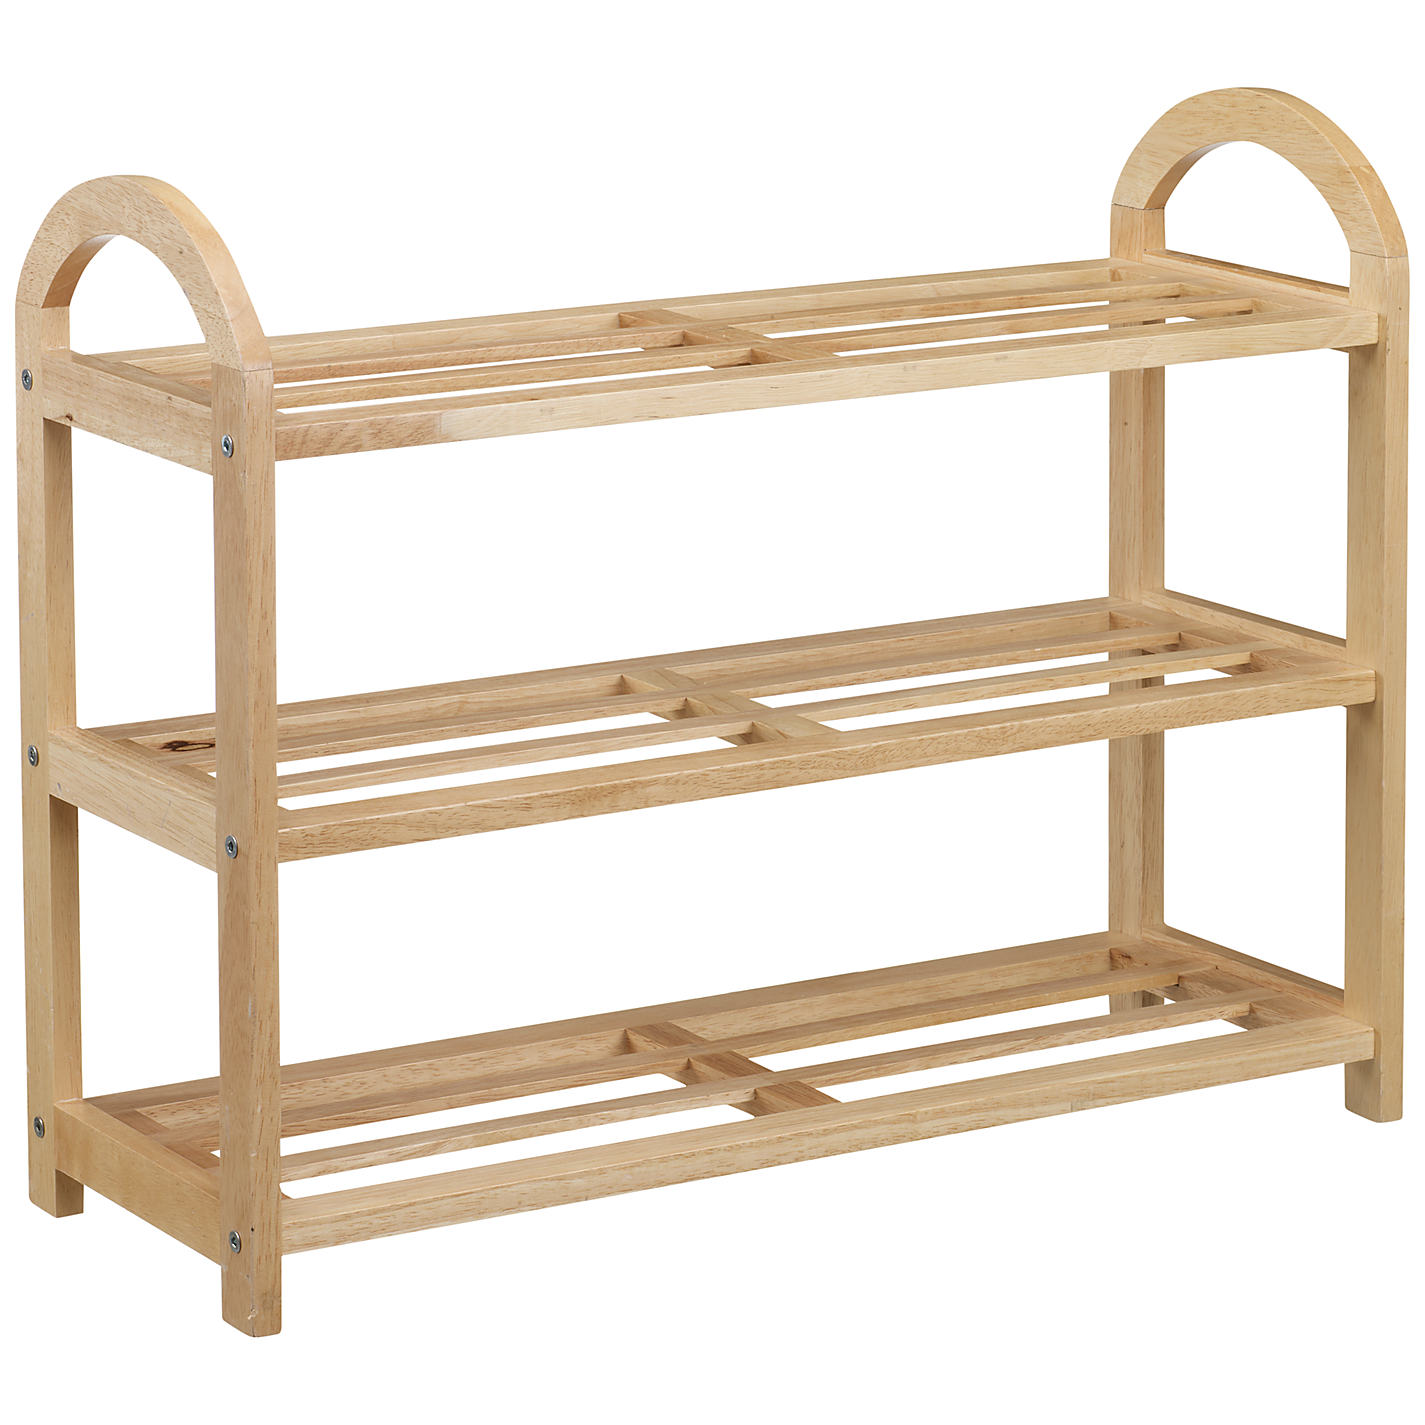 The savage dolls inexpensive ag doll room and bed ideas - Shoe rack for small space set ...